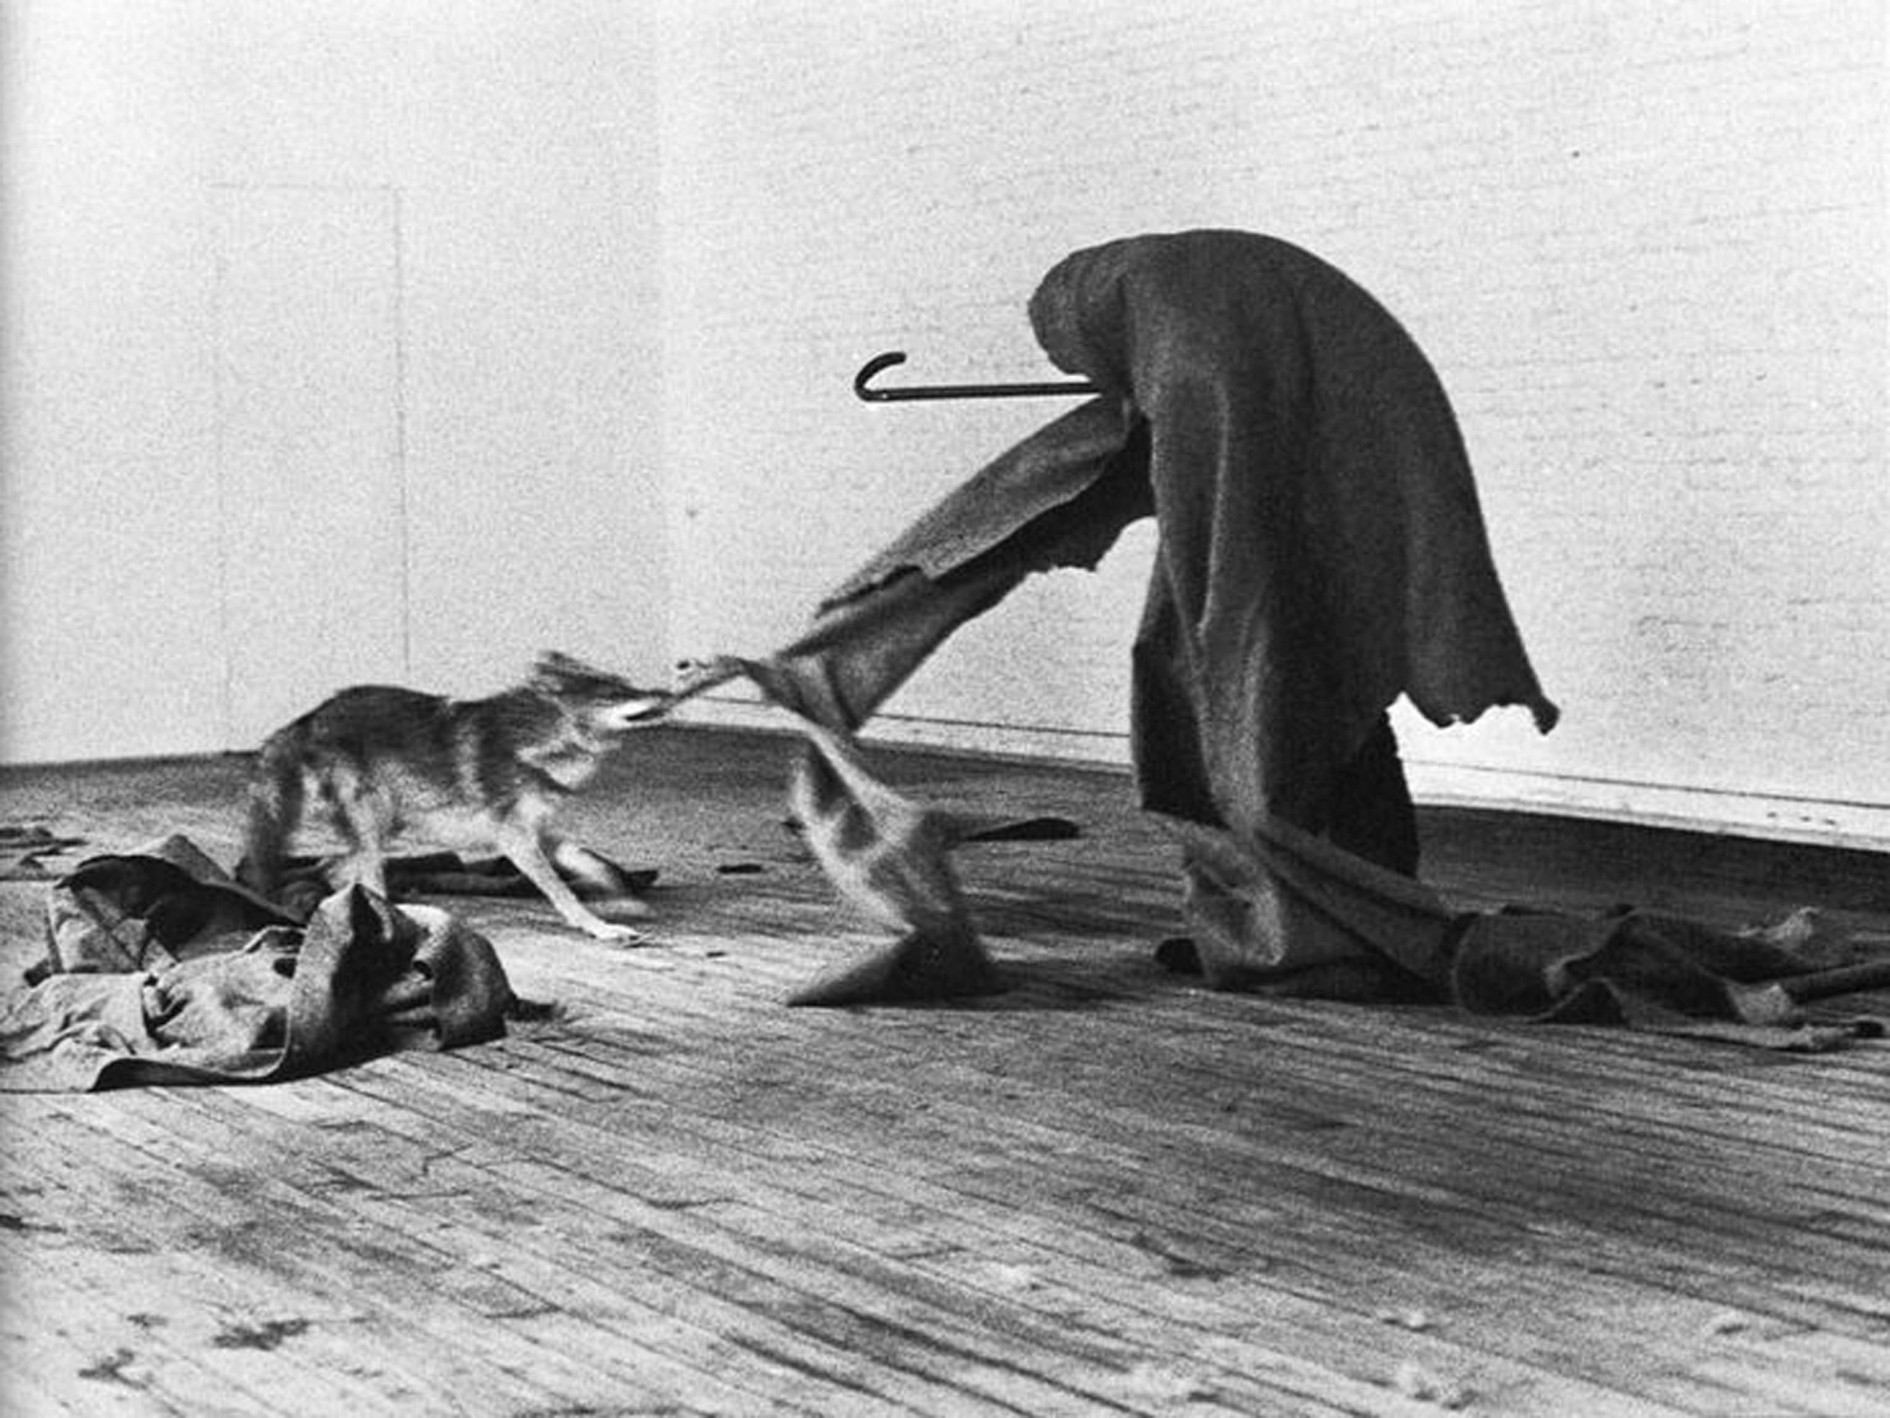 thumb-Joseph-Beuys-I-like-America-and-America-likes-me-.-1974--Joseph-Beuys-.-I-like-America-and-America-likes-me-.-1974.jpg